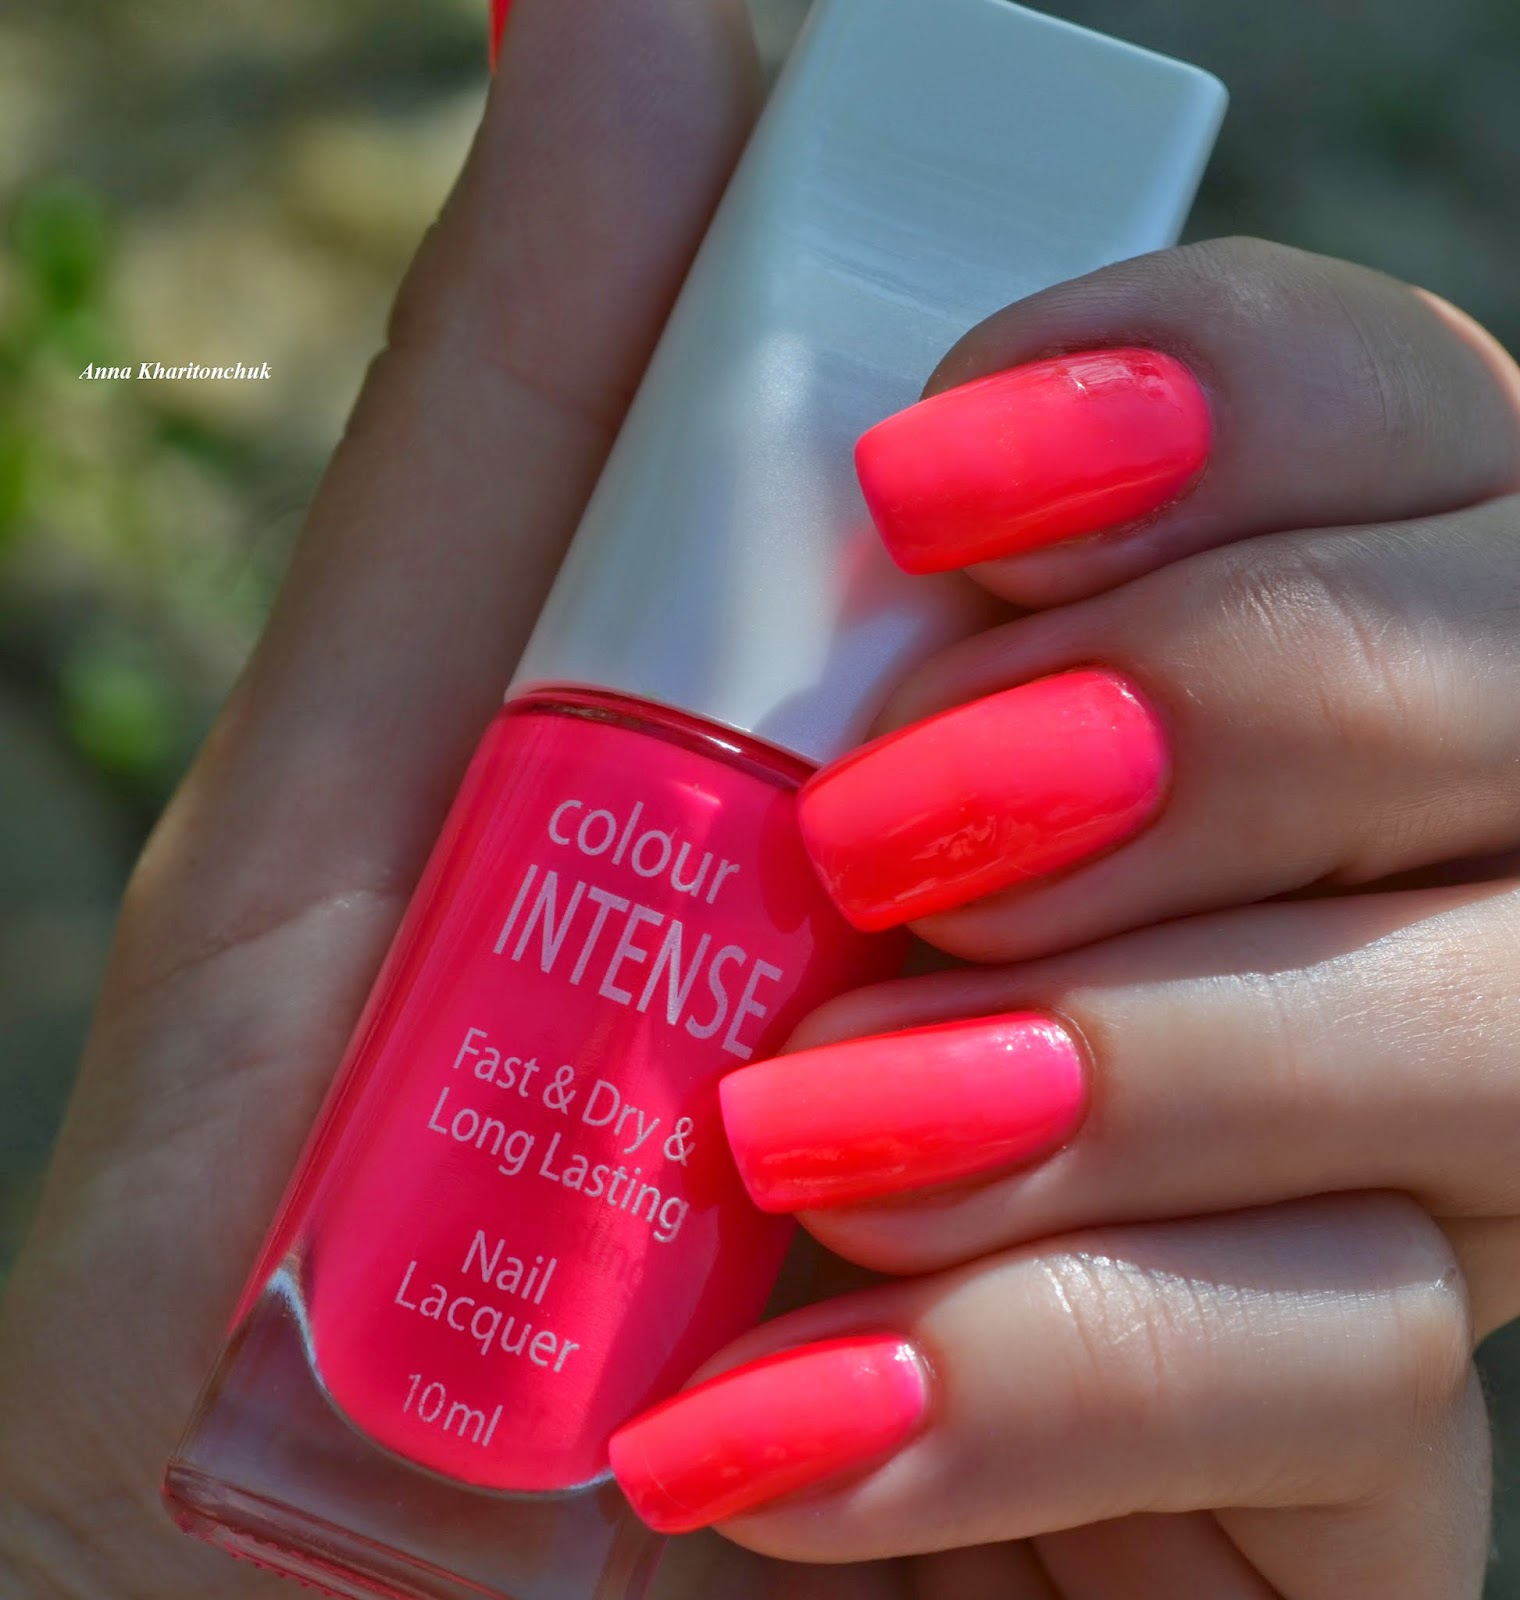 Colour Intense  Fast&Dry&Long Lasting # 129